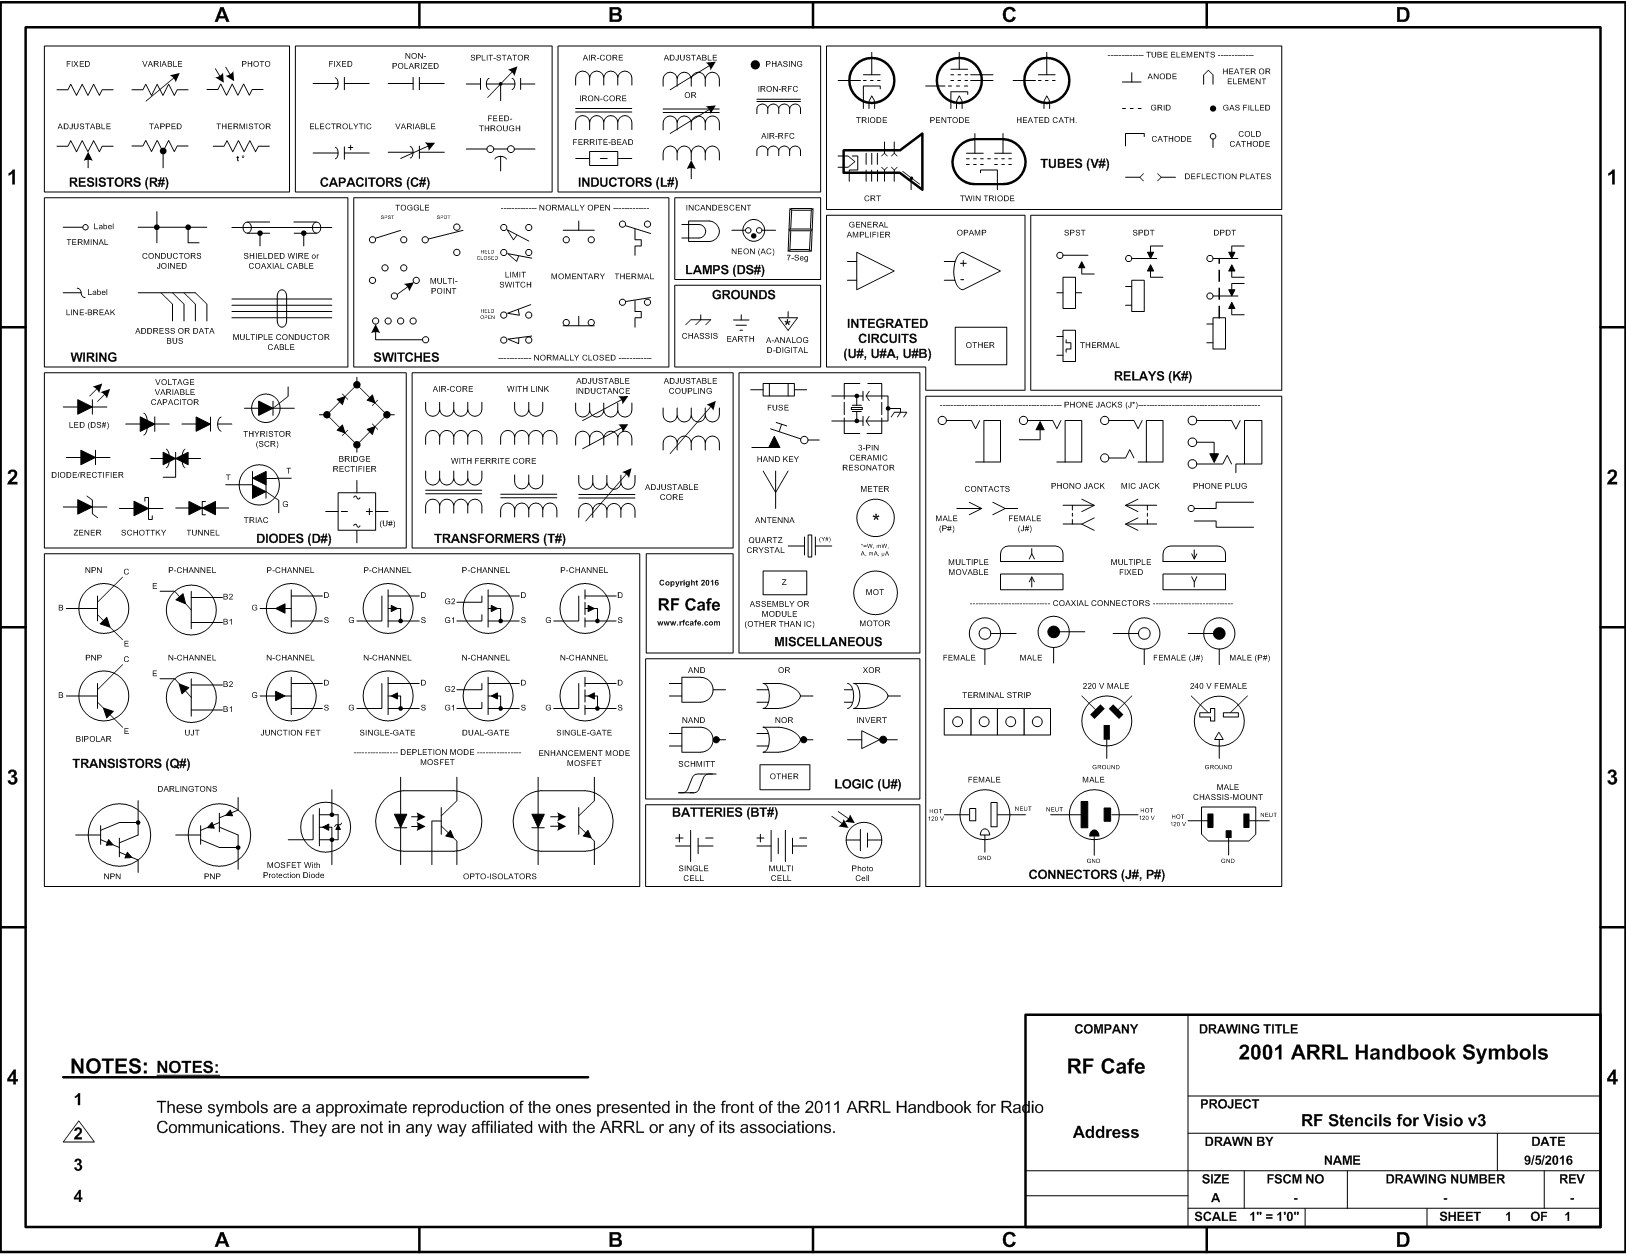 Holley Tbi Wiring Diagram together with Inter  Of Things Diagram moreover Visio Stencils further Jeep Cj7 Light Switch Wiring Diagram further Foxconn Free Schematic Diagram The. on microsoft visio circuit